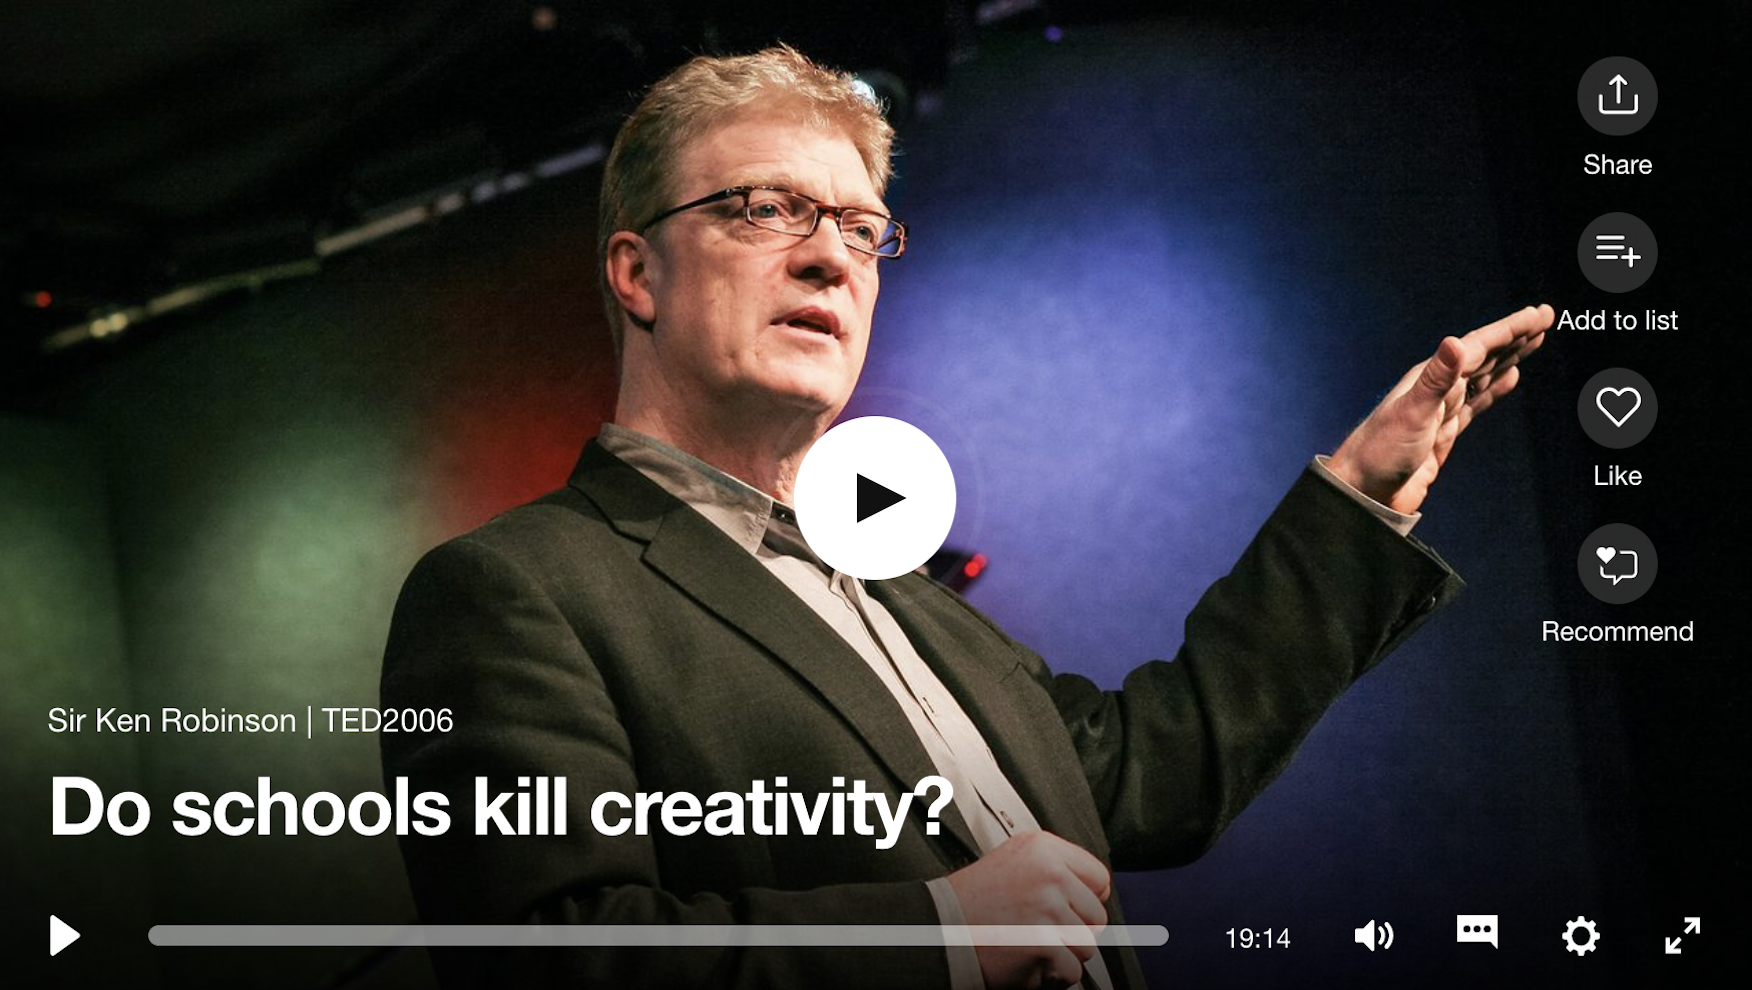 Top 5 TED Talks of All Time